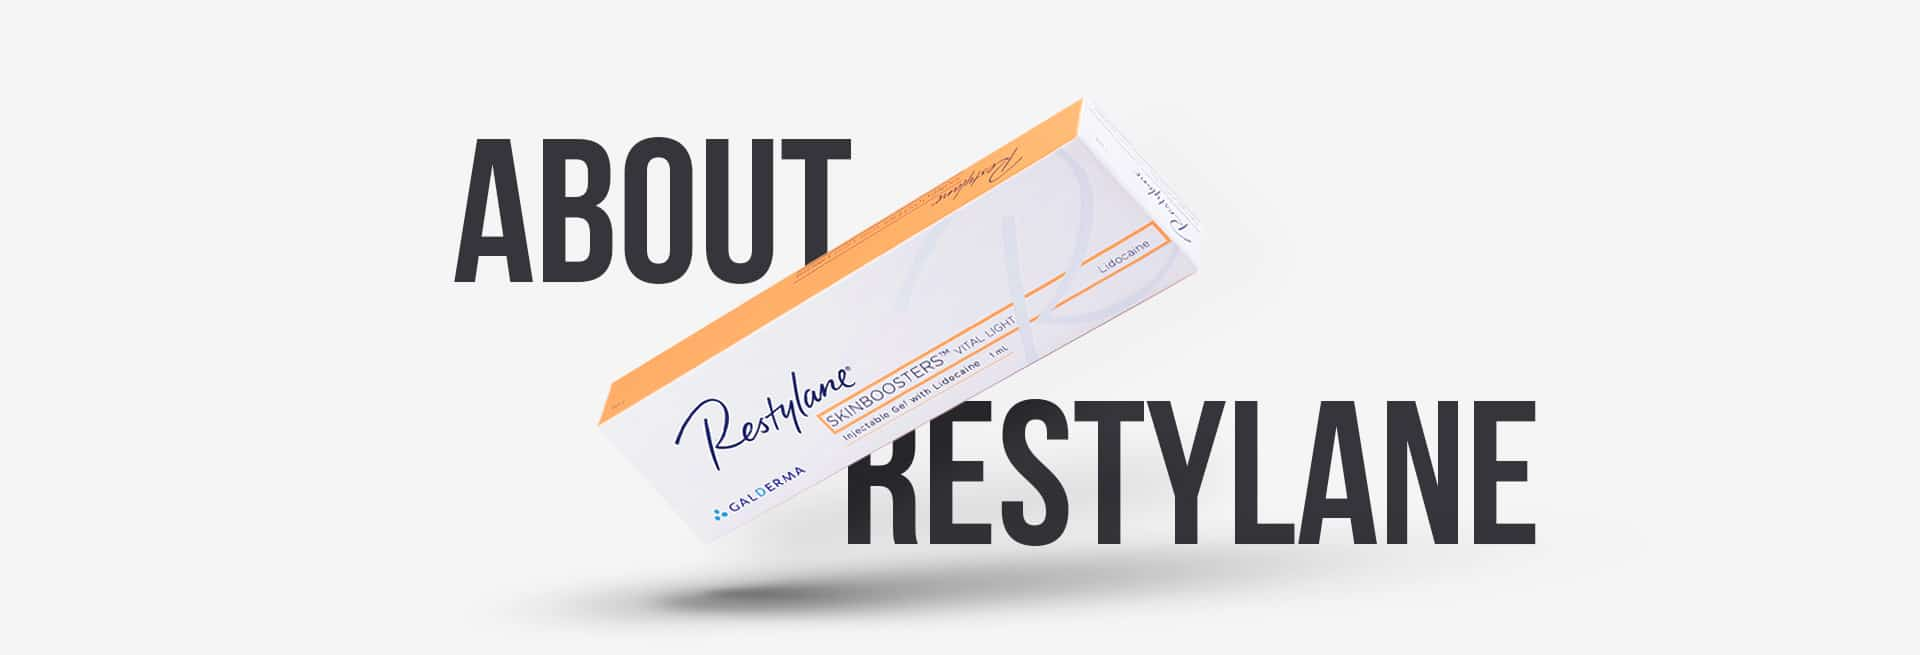 About Restylane